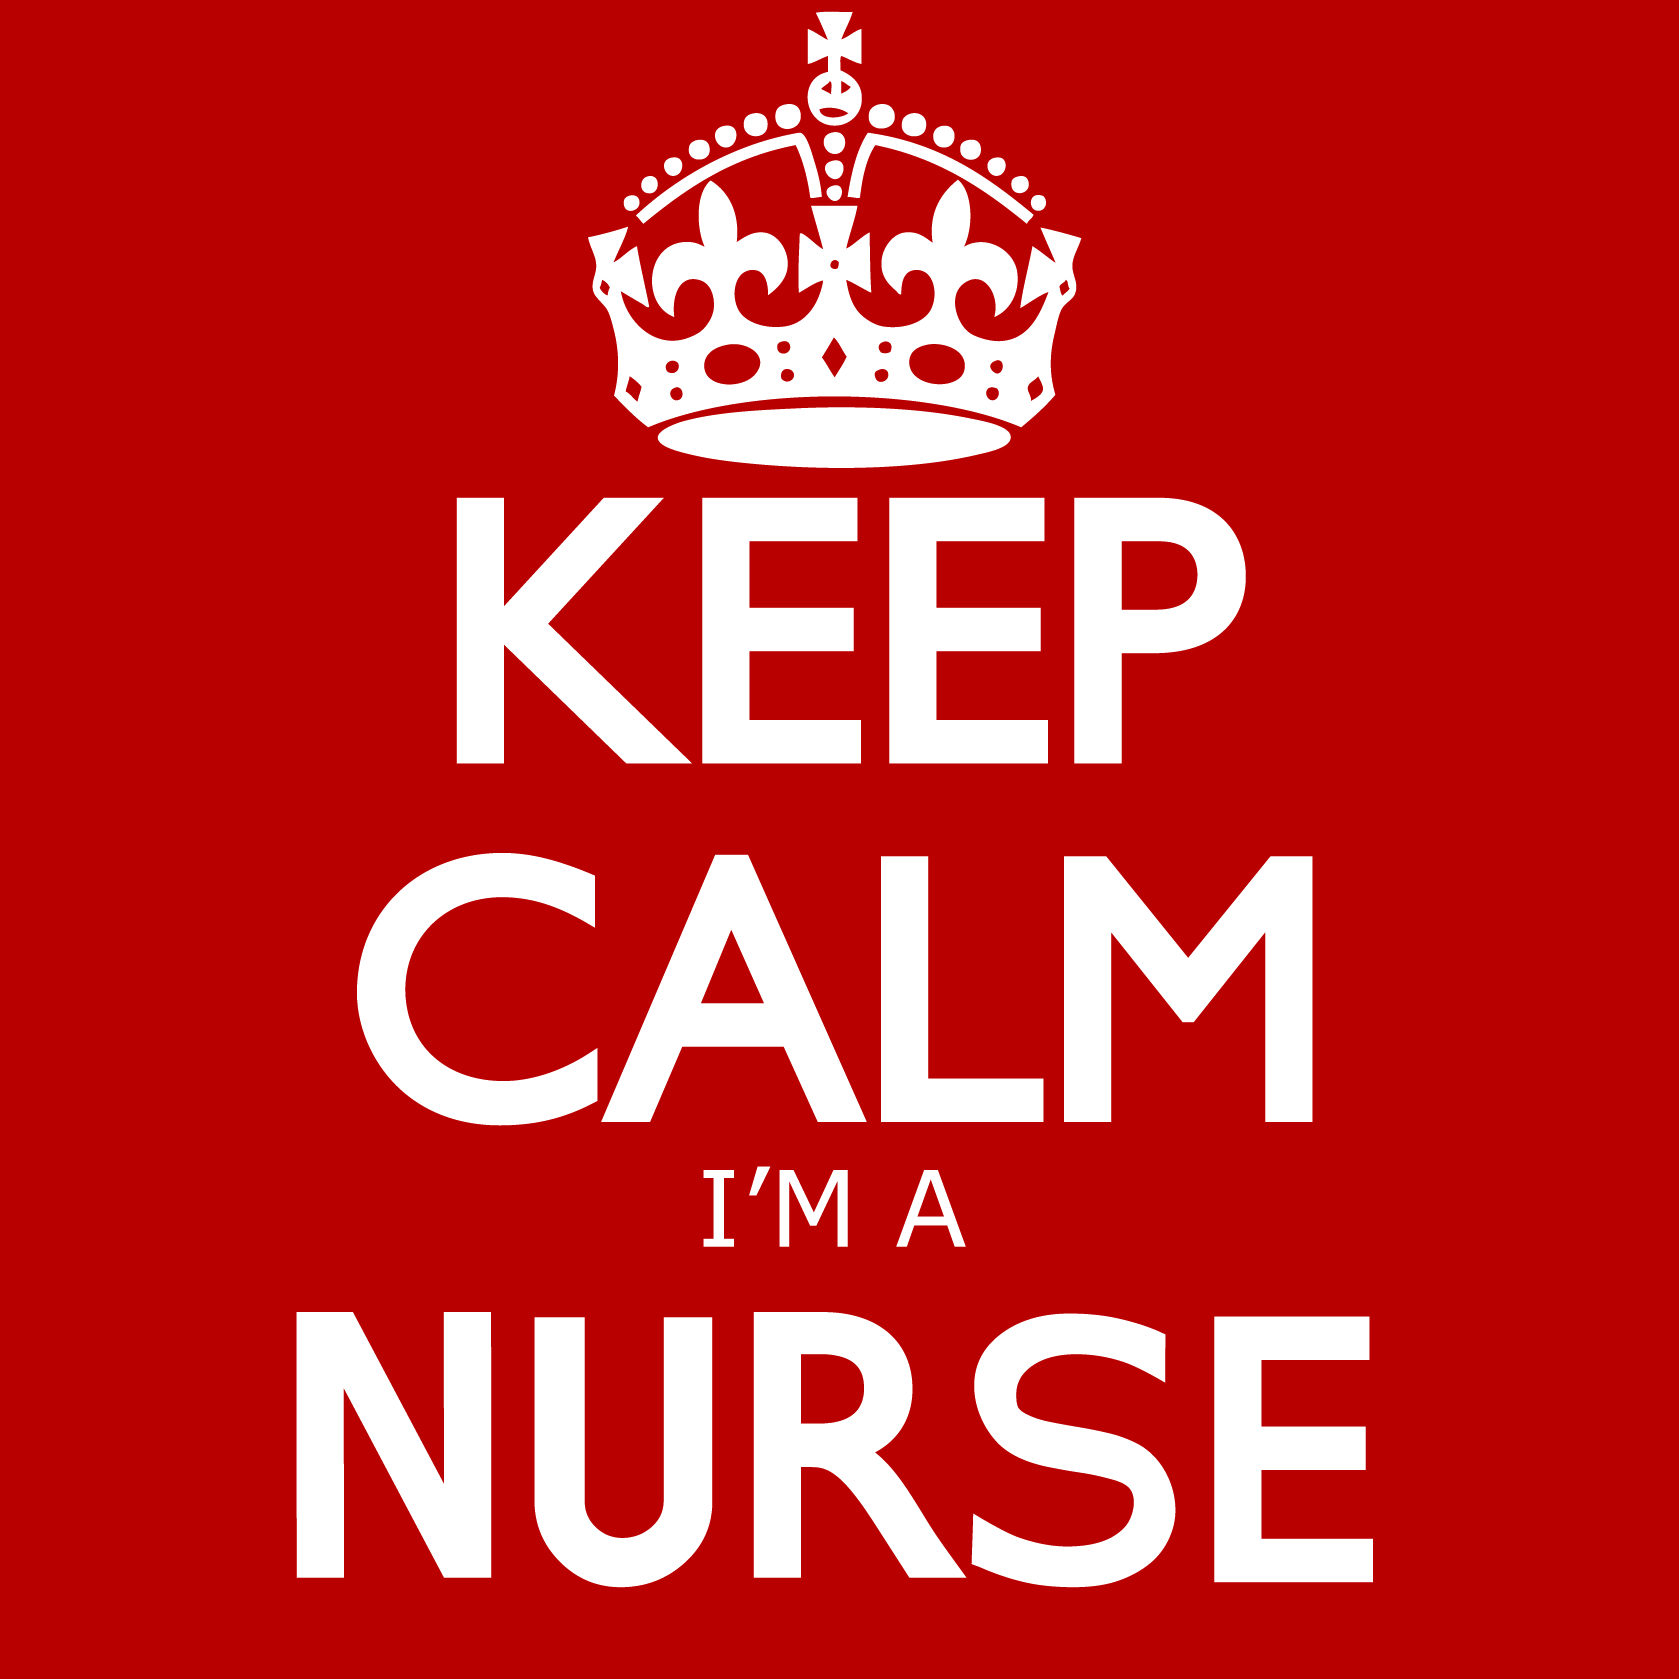 Happy Nurses Week Clip Art free image.